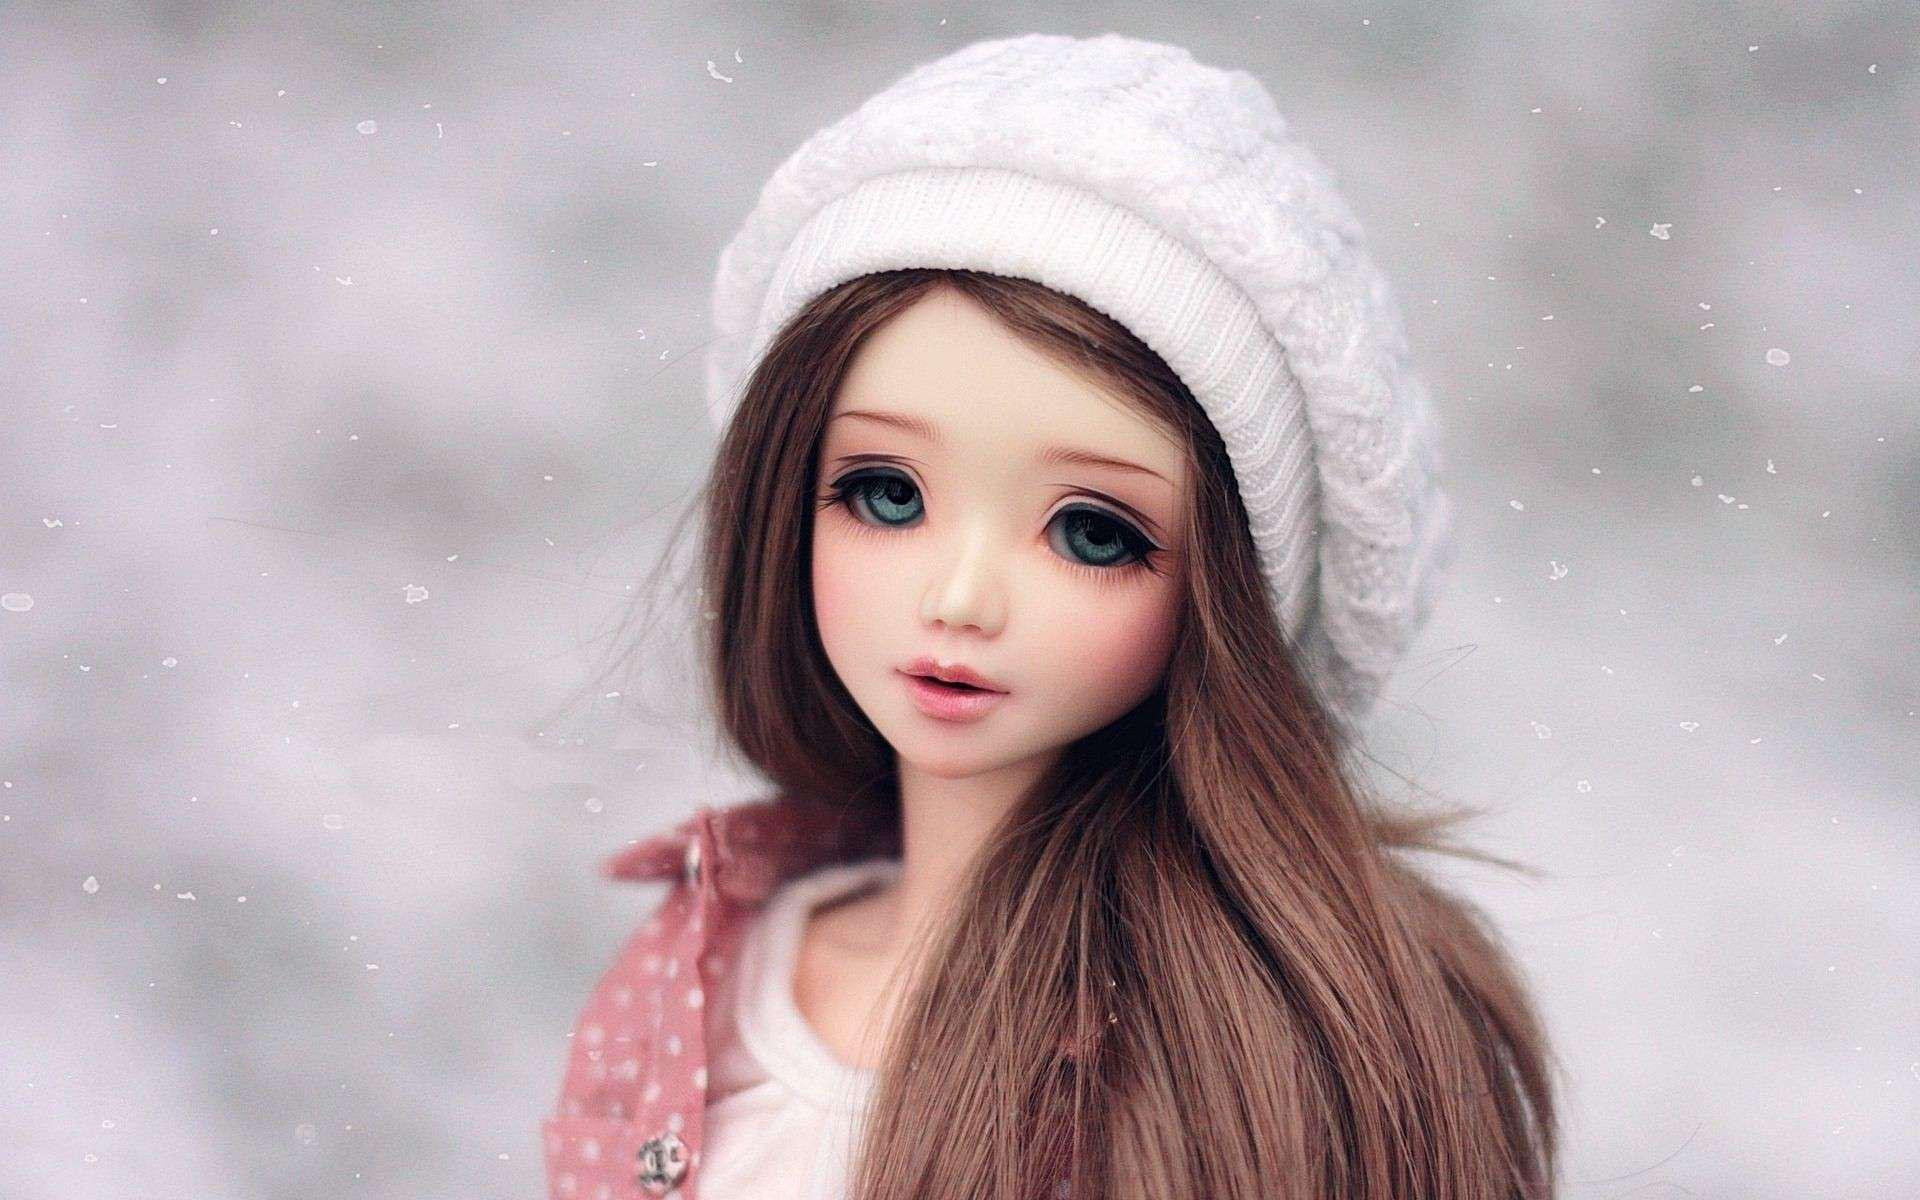 Baby Doll Wallpapers For Mobile Phones Cute Barbie Doll Wallpapers